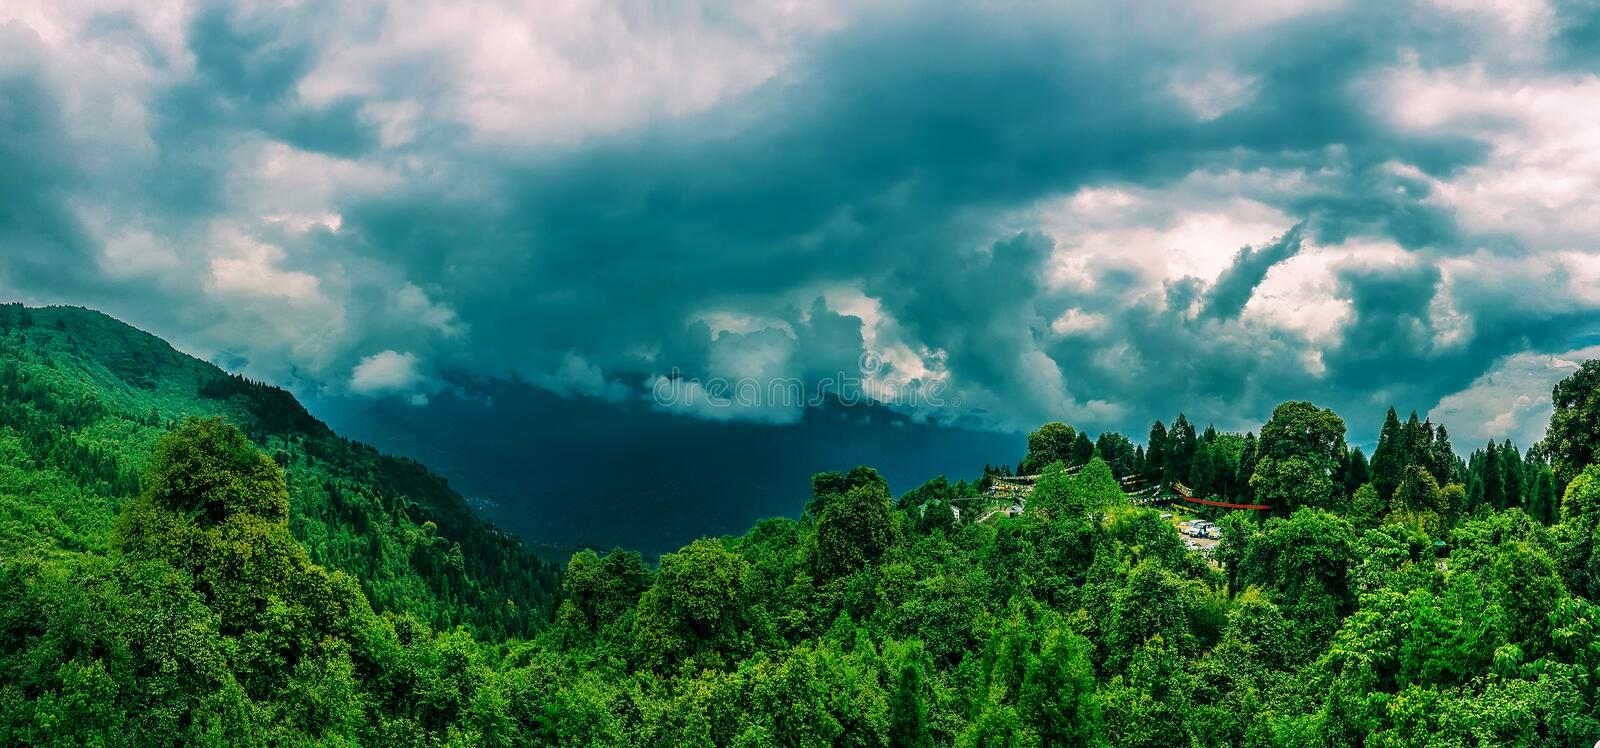 July 2018, Sikkim, India : A panoramic view of himalayan mountain range from hanumantok view point during a cloudy day. This is a stock photography